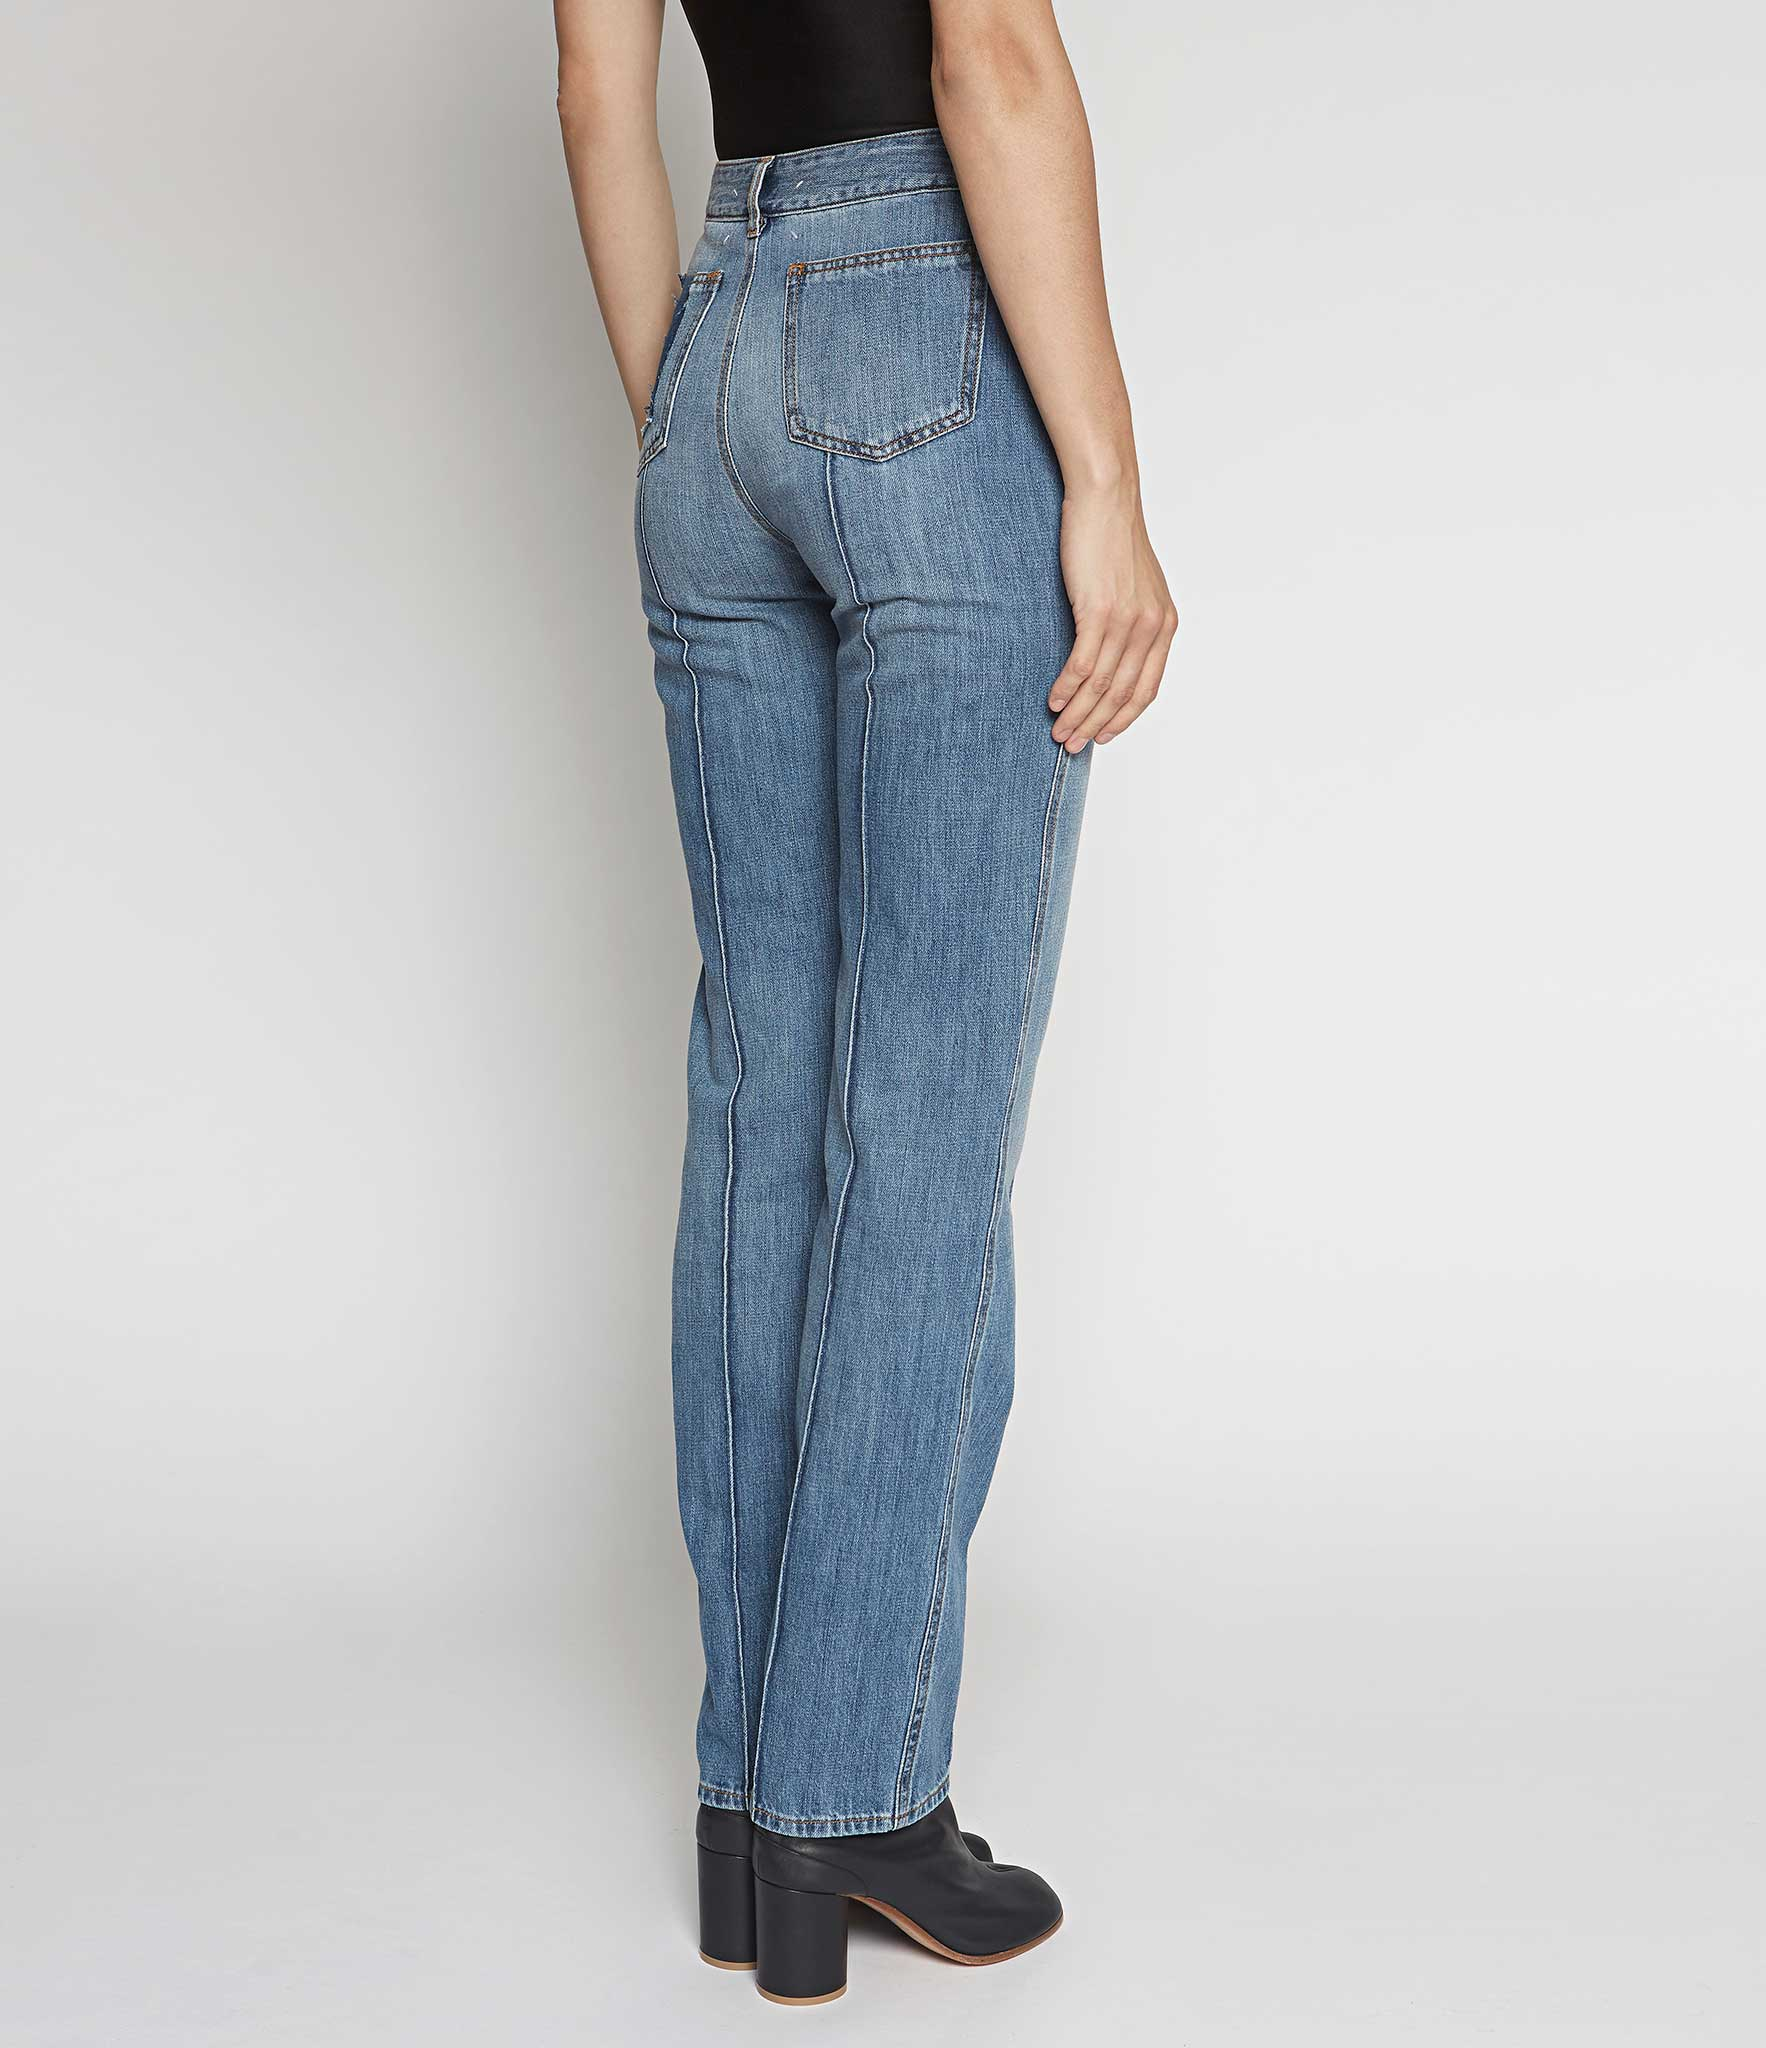 Maison Margiela Faded High Waist Denim